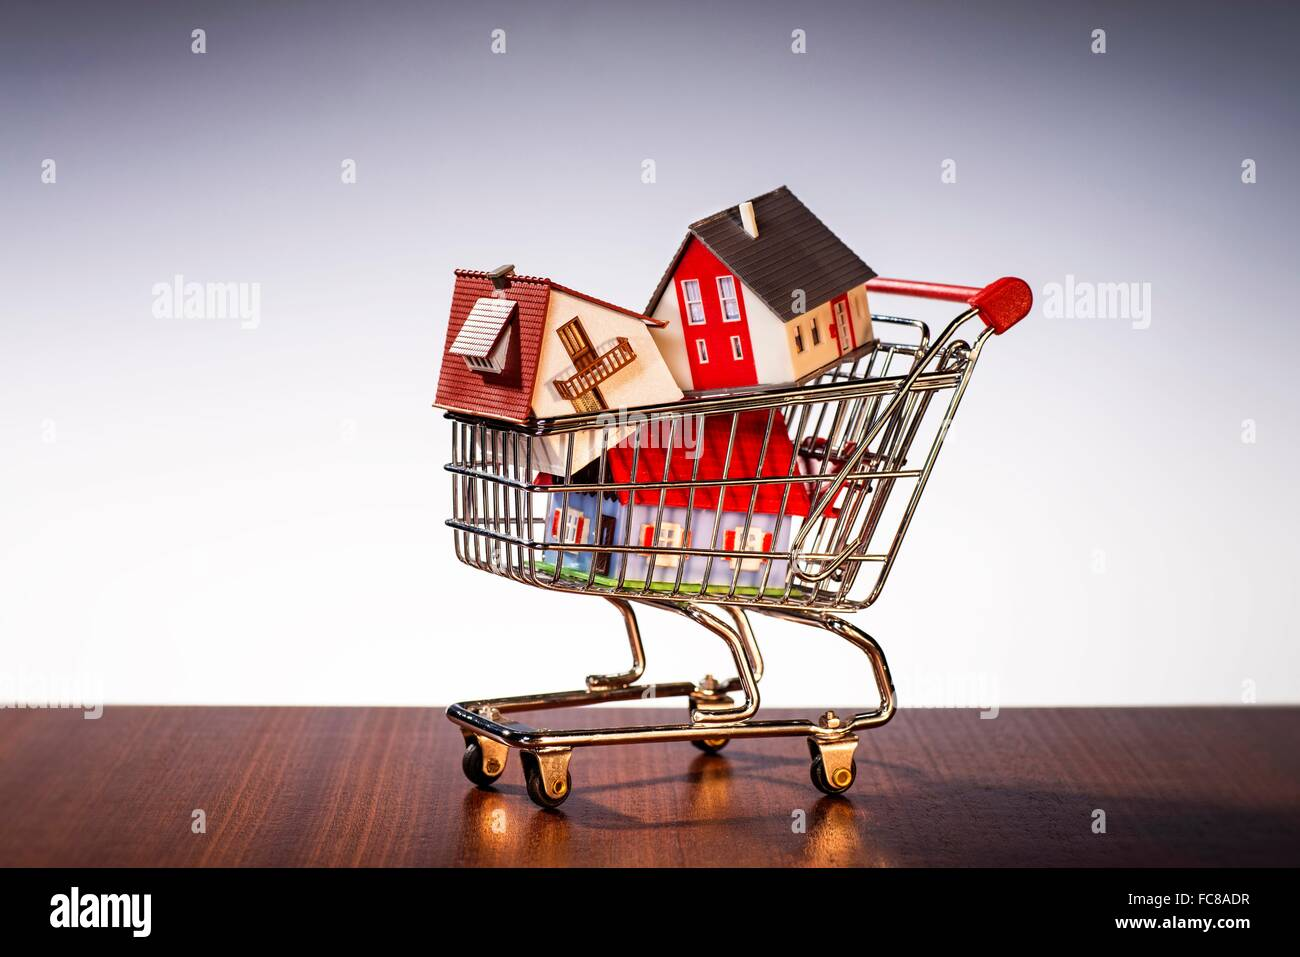 Houses are stacked in a shopping cart. Stock Photo